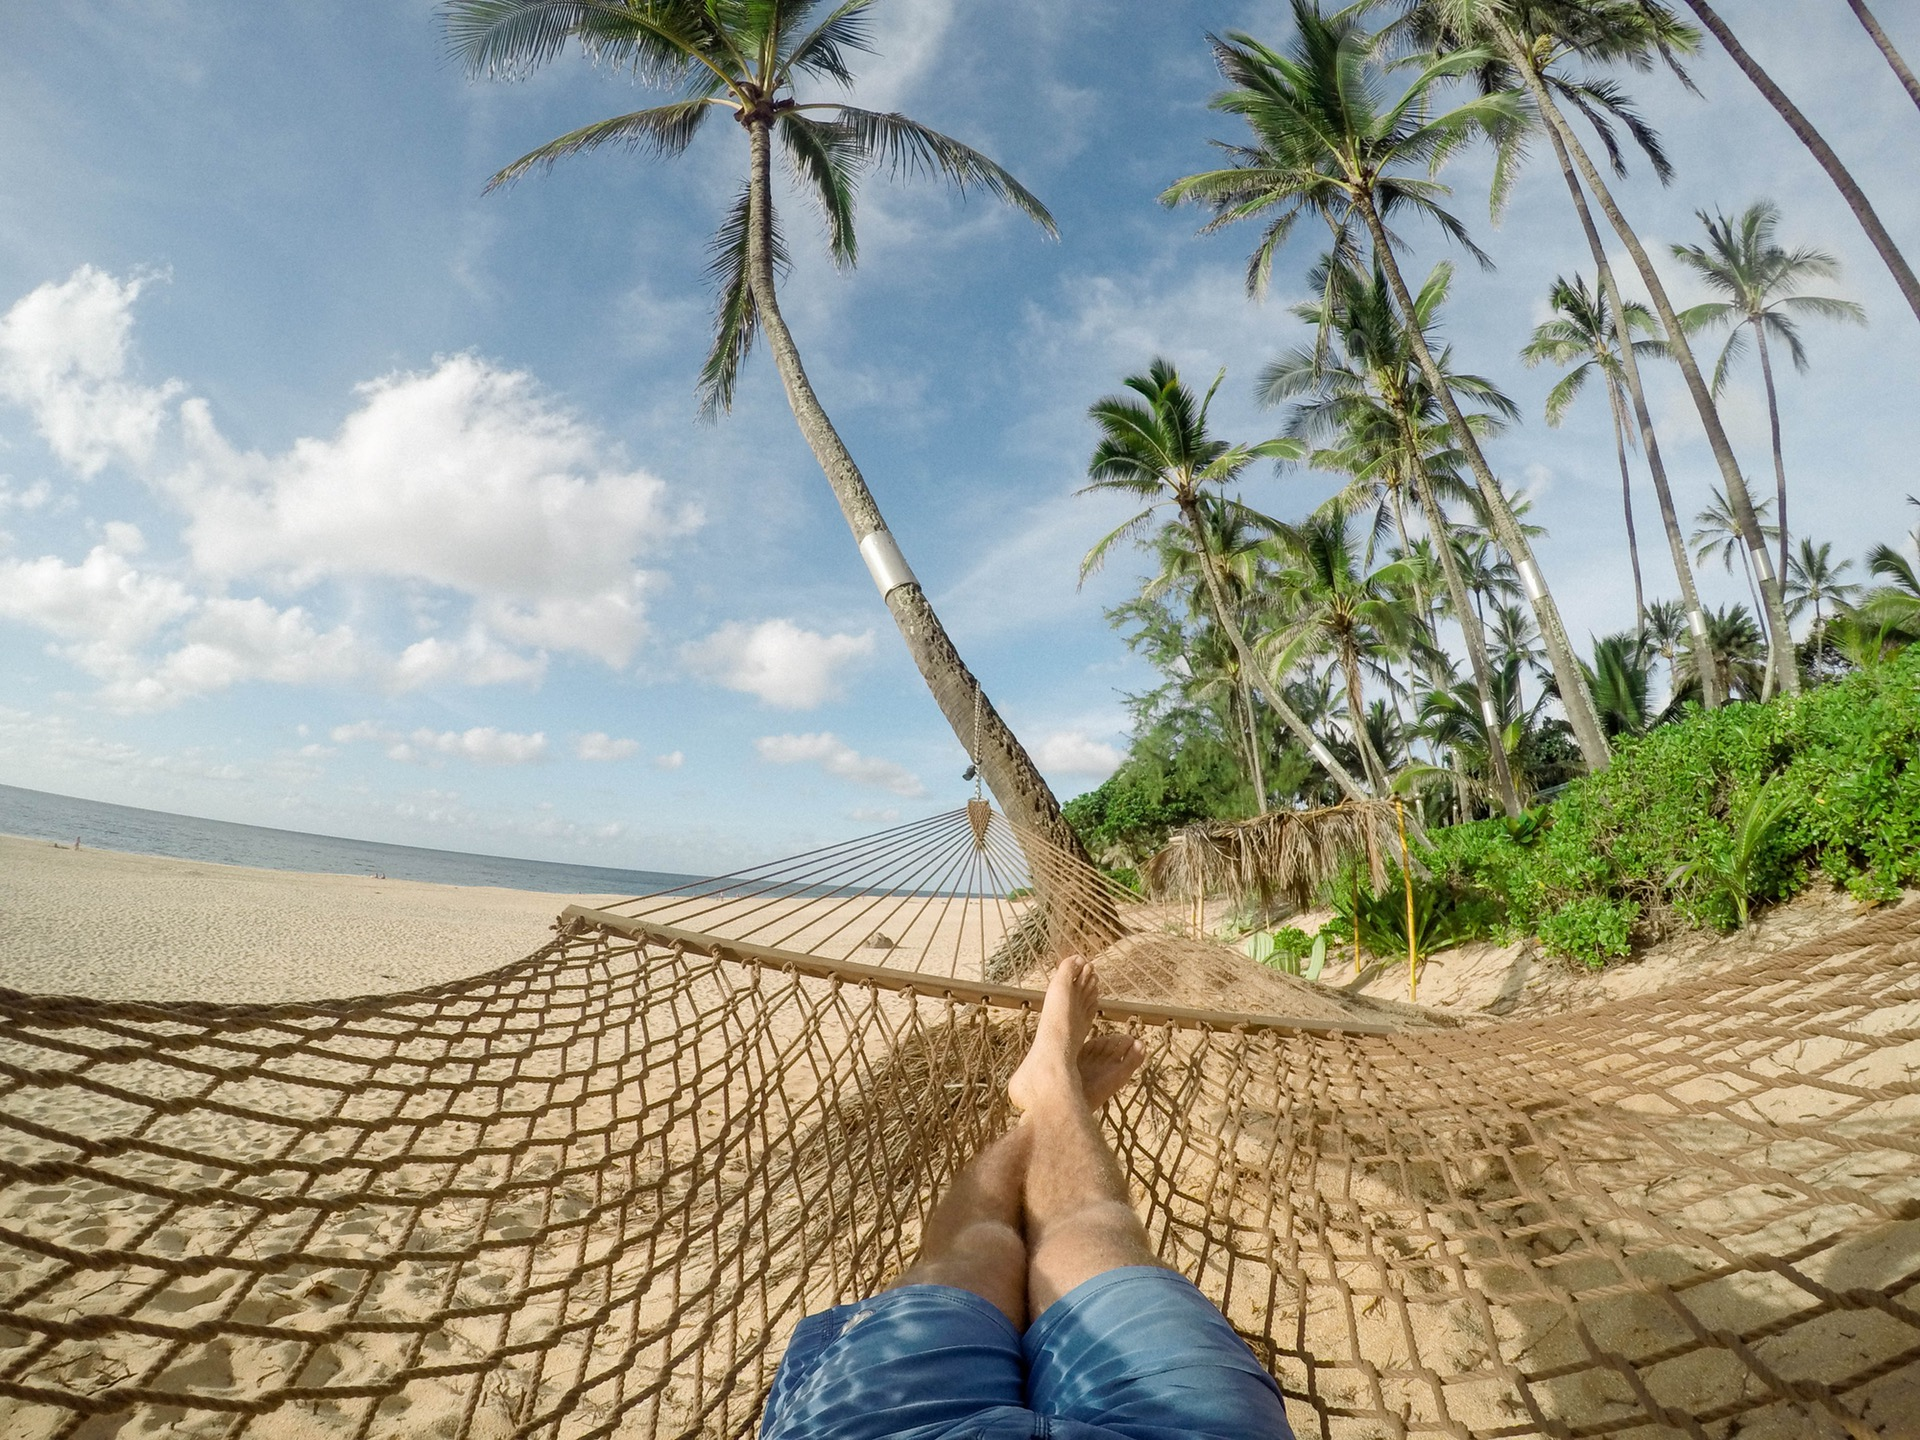 Point of view shot of man laying on hammock on beach